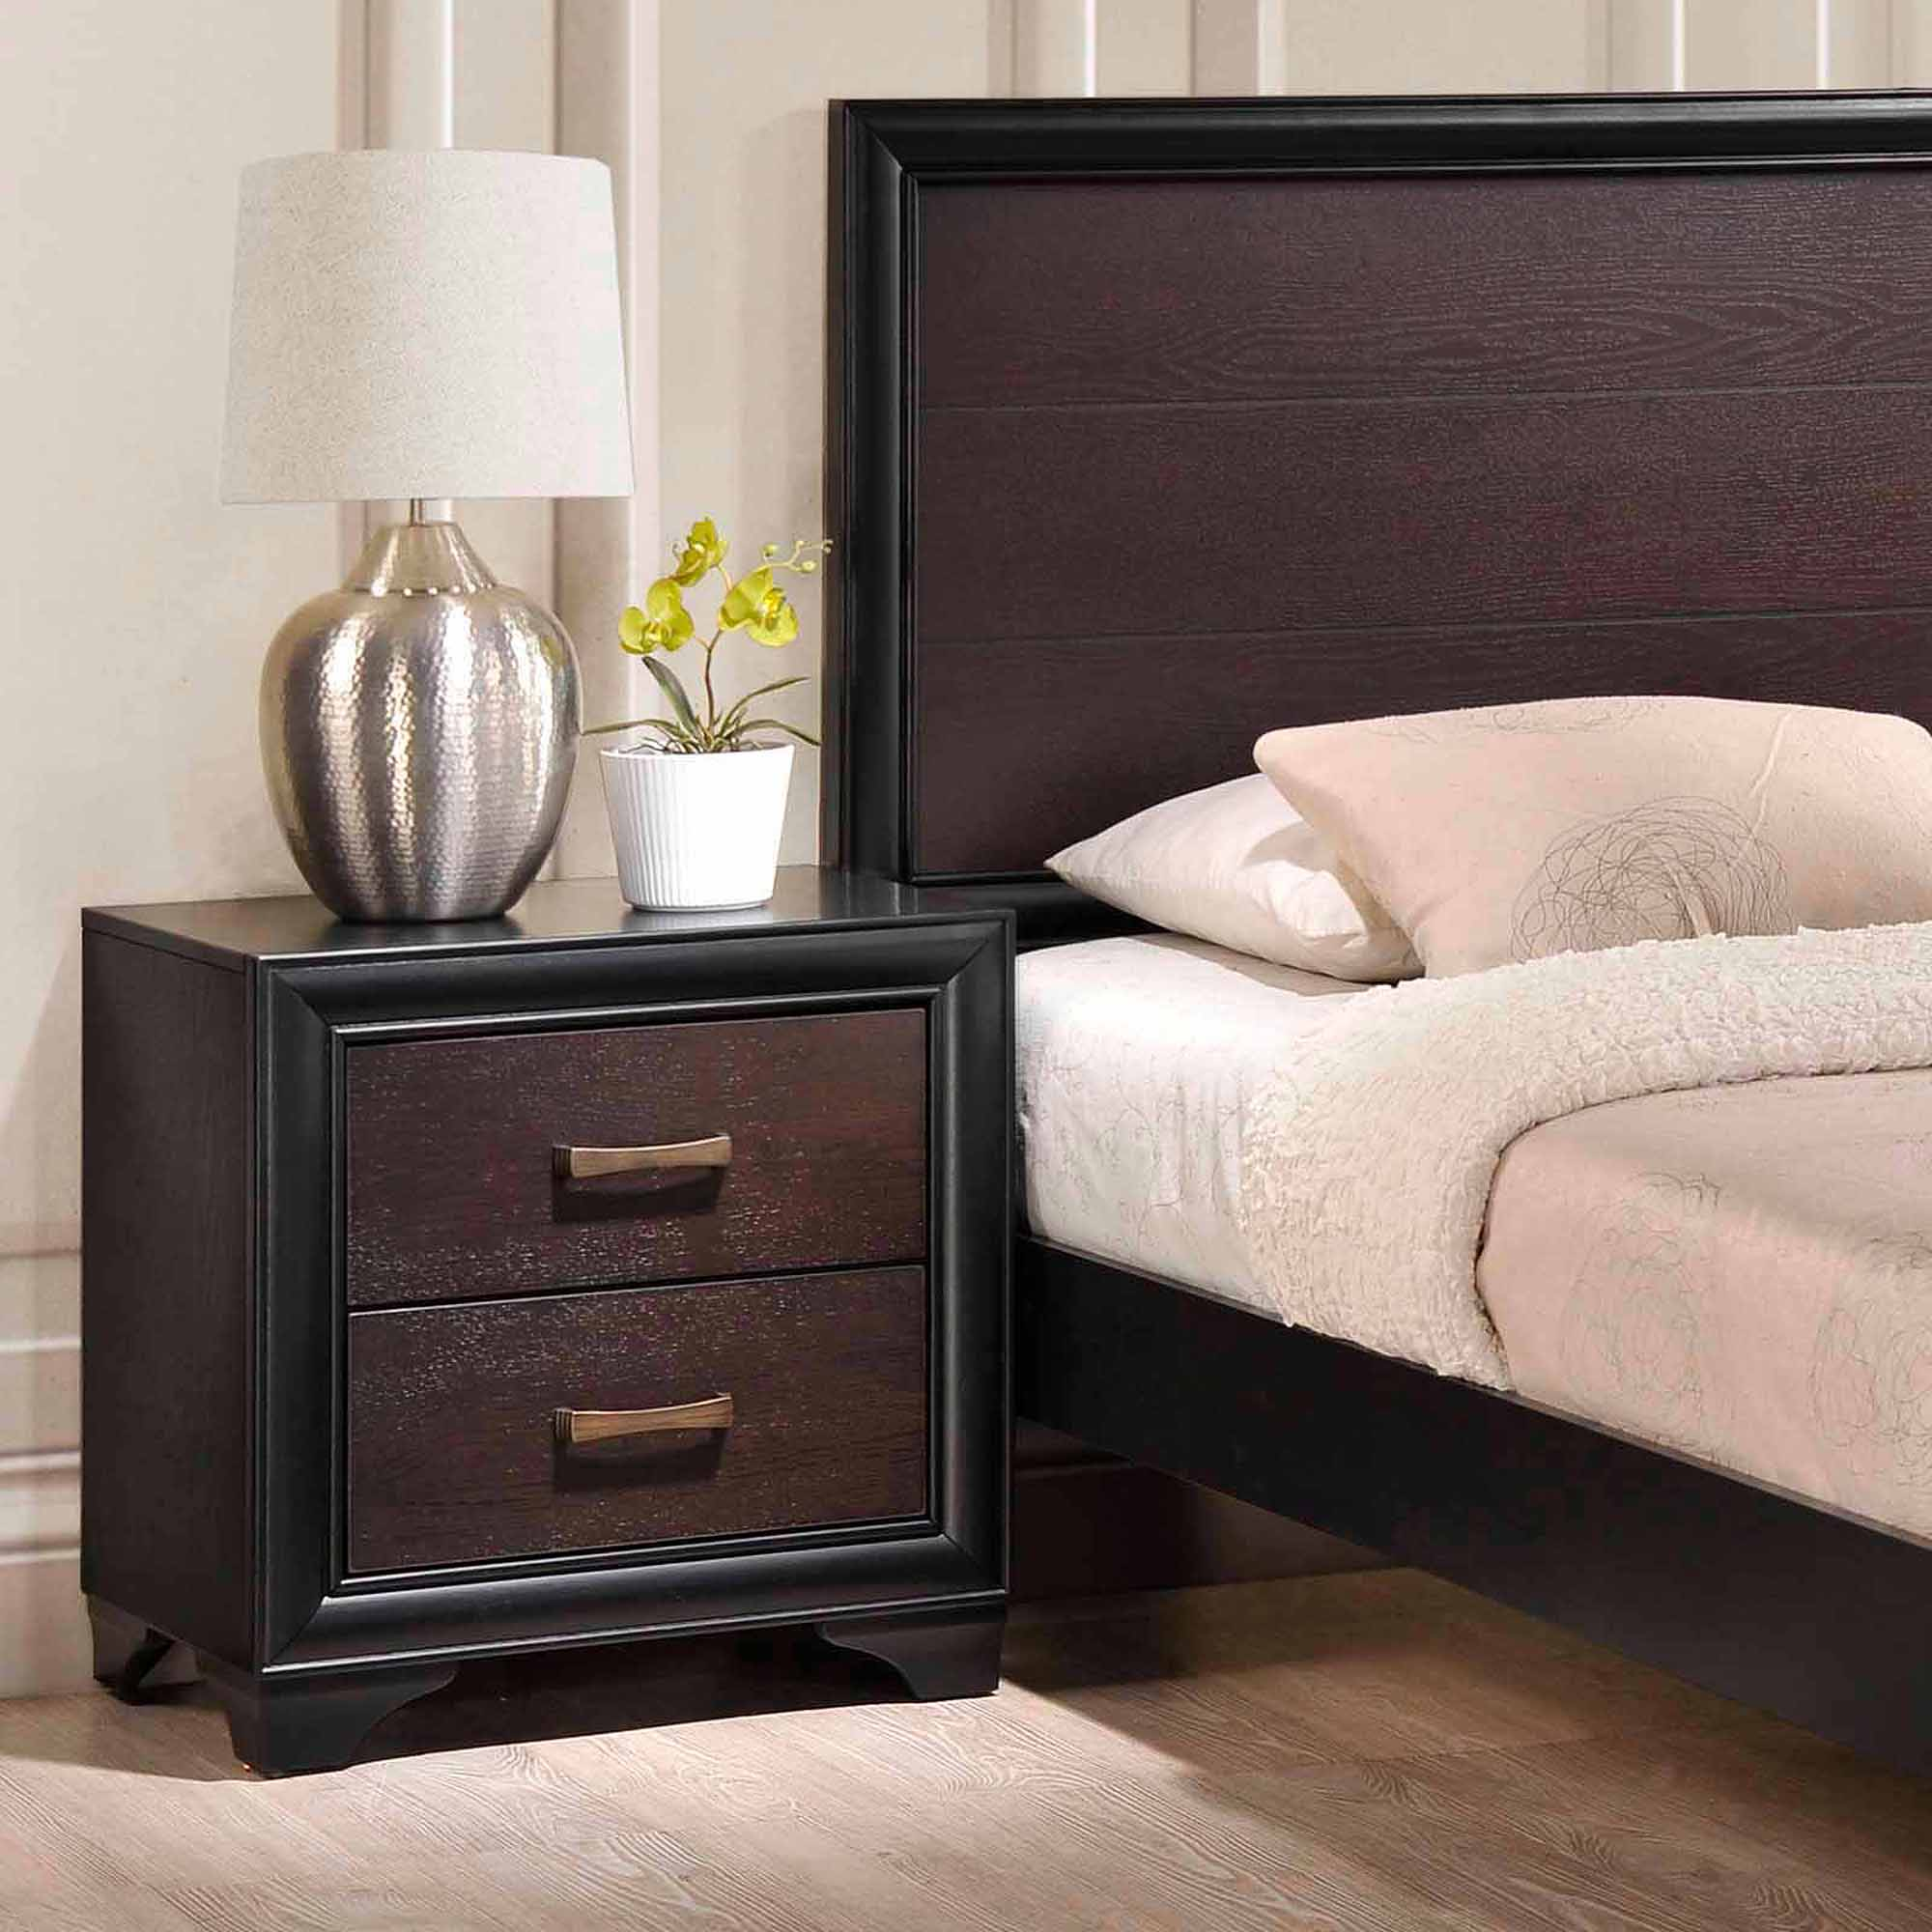 Modway madison 2 drawer nightstand fully assembled in walnut walmart com